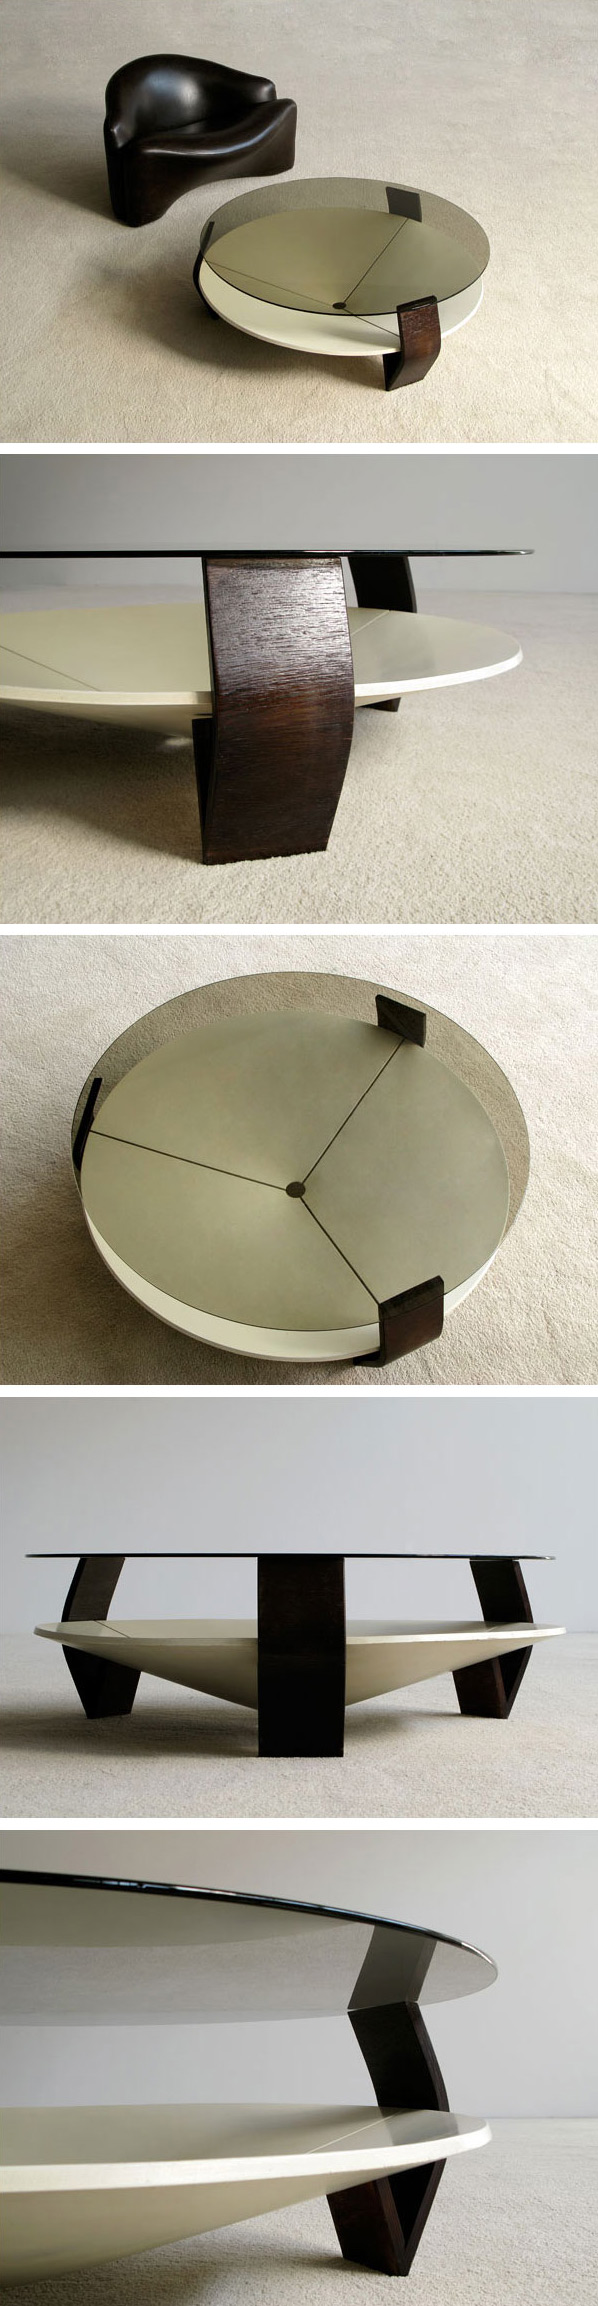 Coffee table with smoke glass top Large